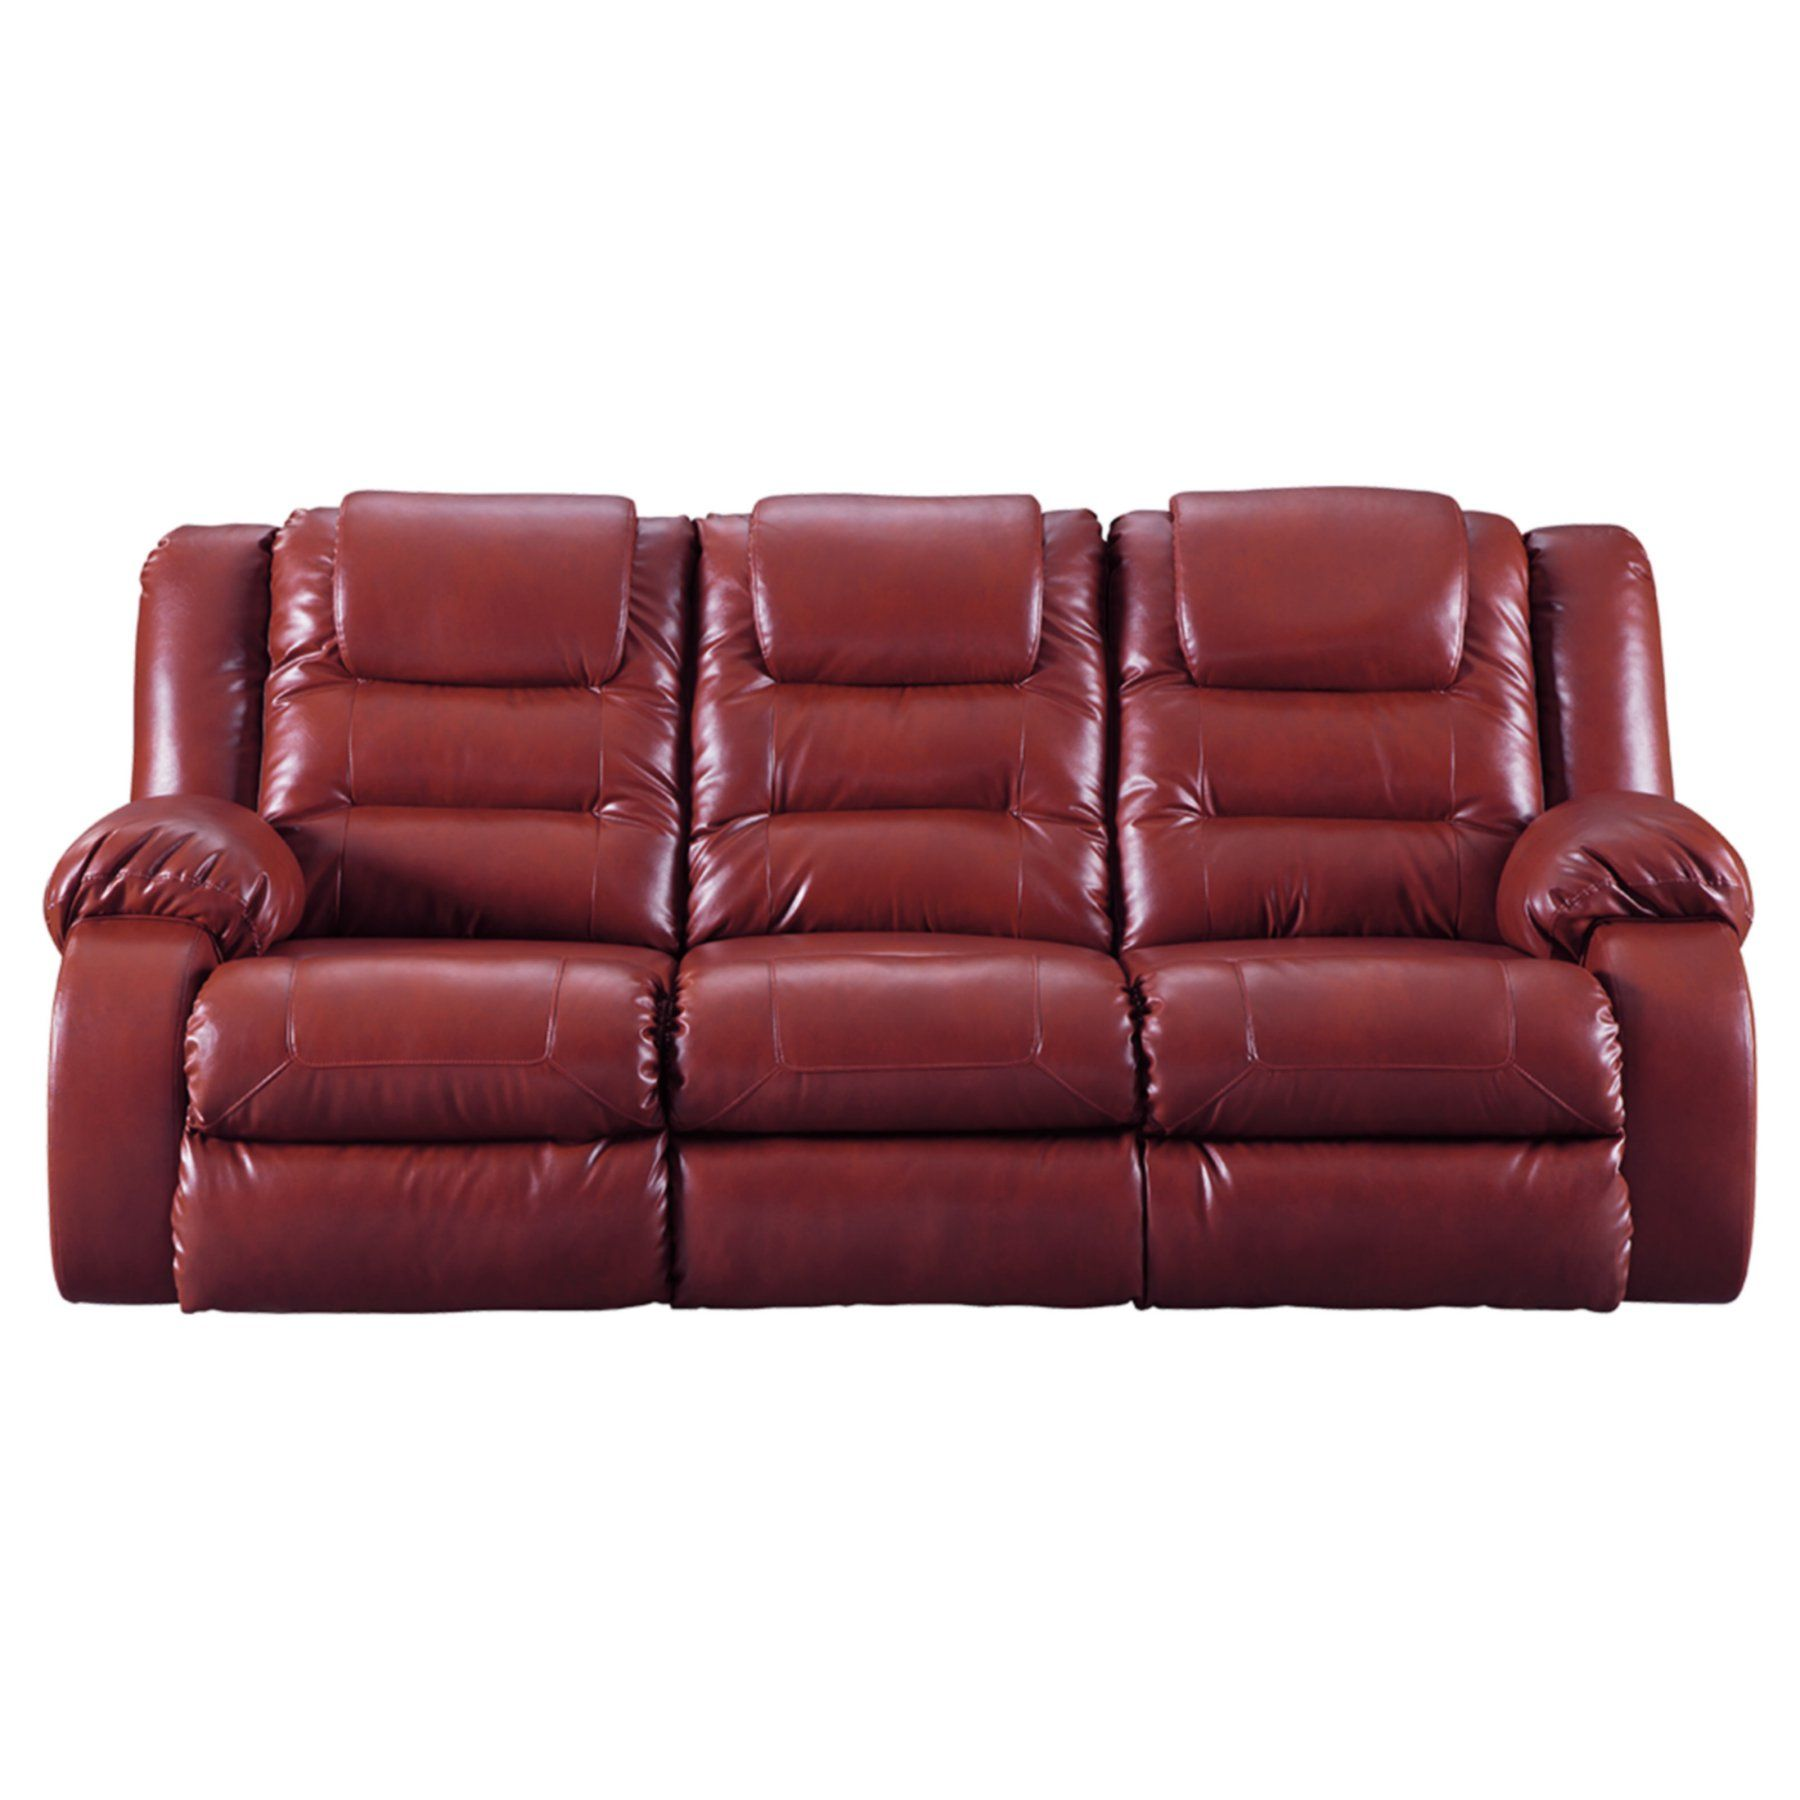 Signature Design By Ashley Vacherie Reclining Sofa  7930688